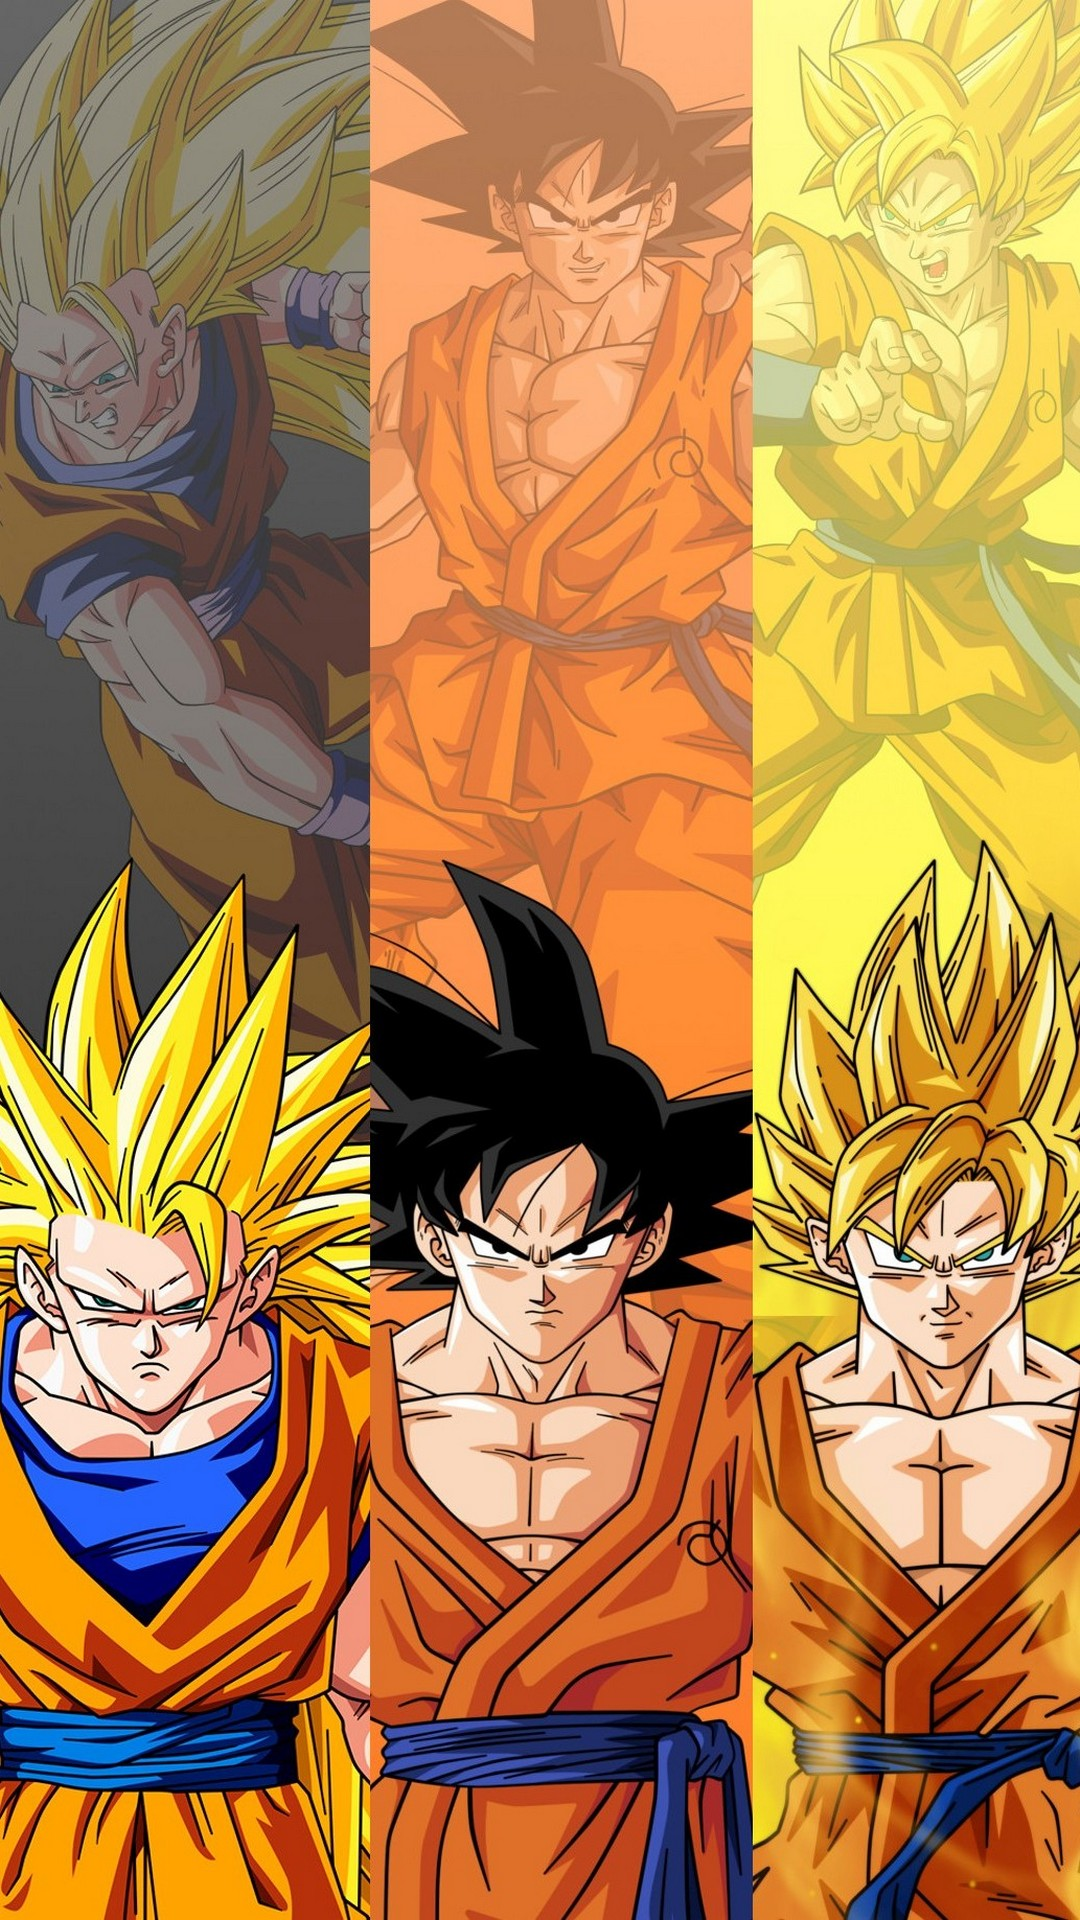 Goku Wallpaper Android With Hd Resolution Dragon Ball Goku Growth 1080x1920 Wallpaper Teahub Io